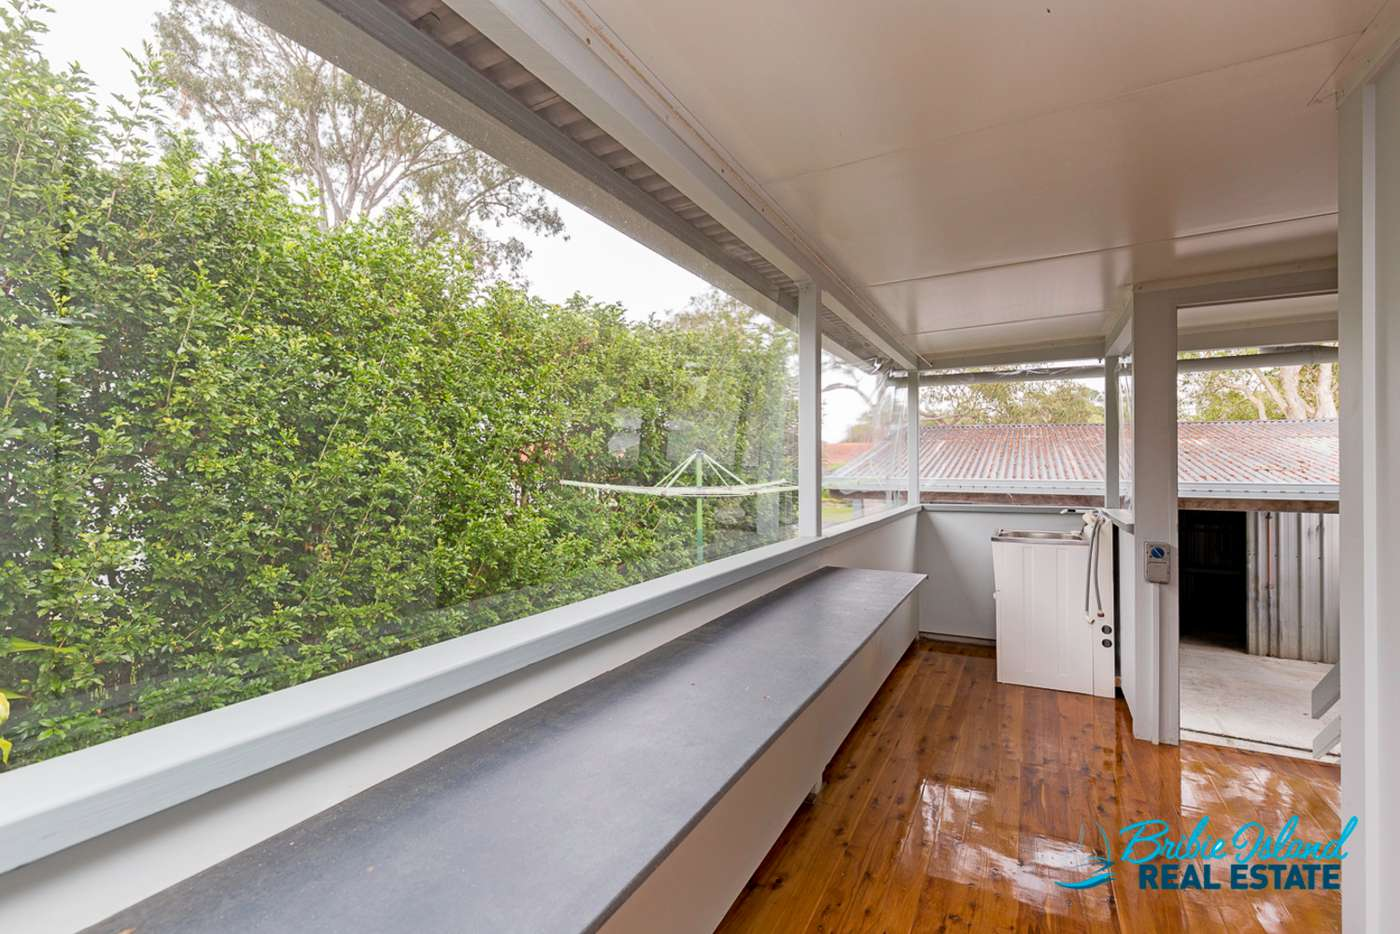 Sixth view of Homely house listing, 13 Edith Street, Donnybrook QLD 4510